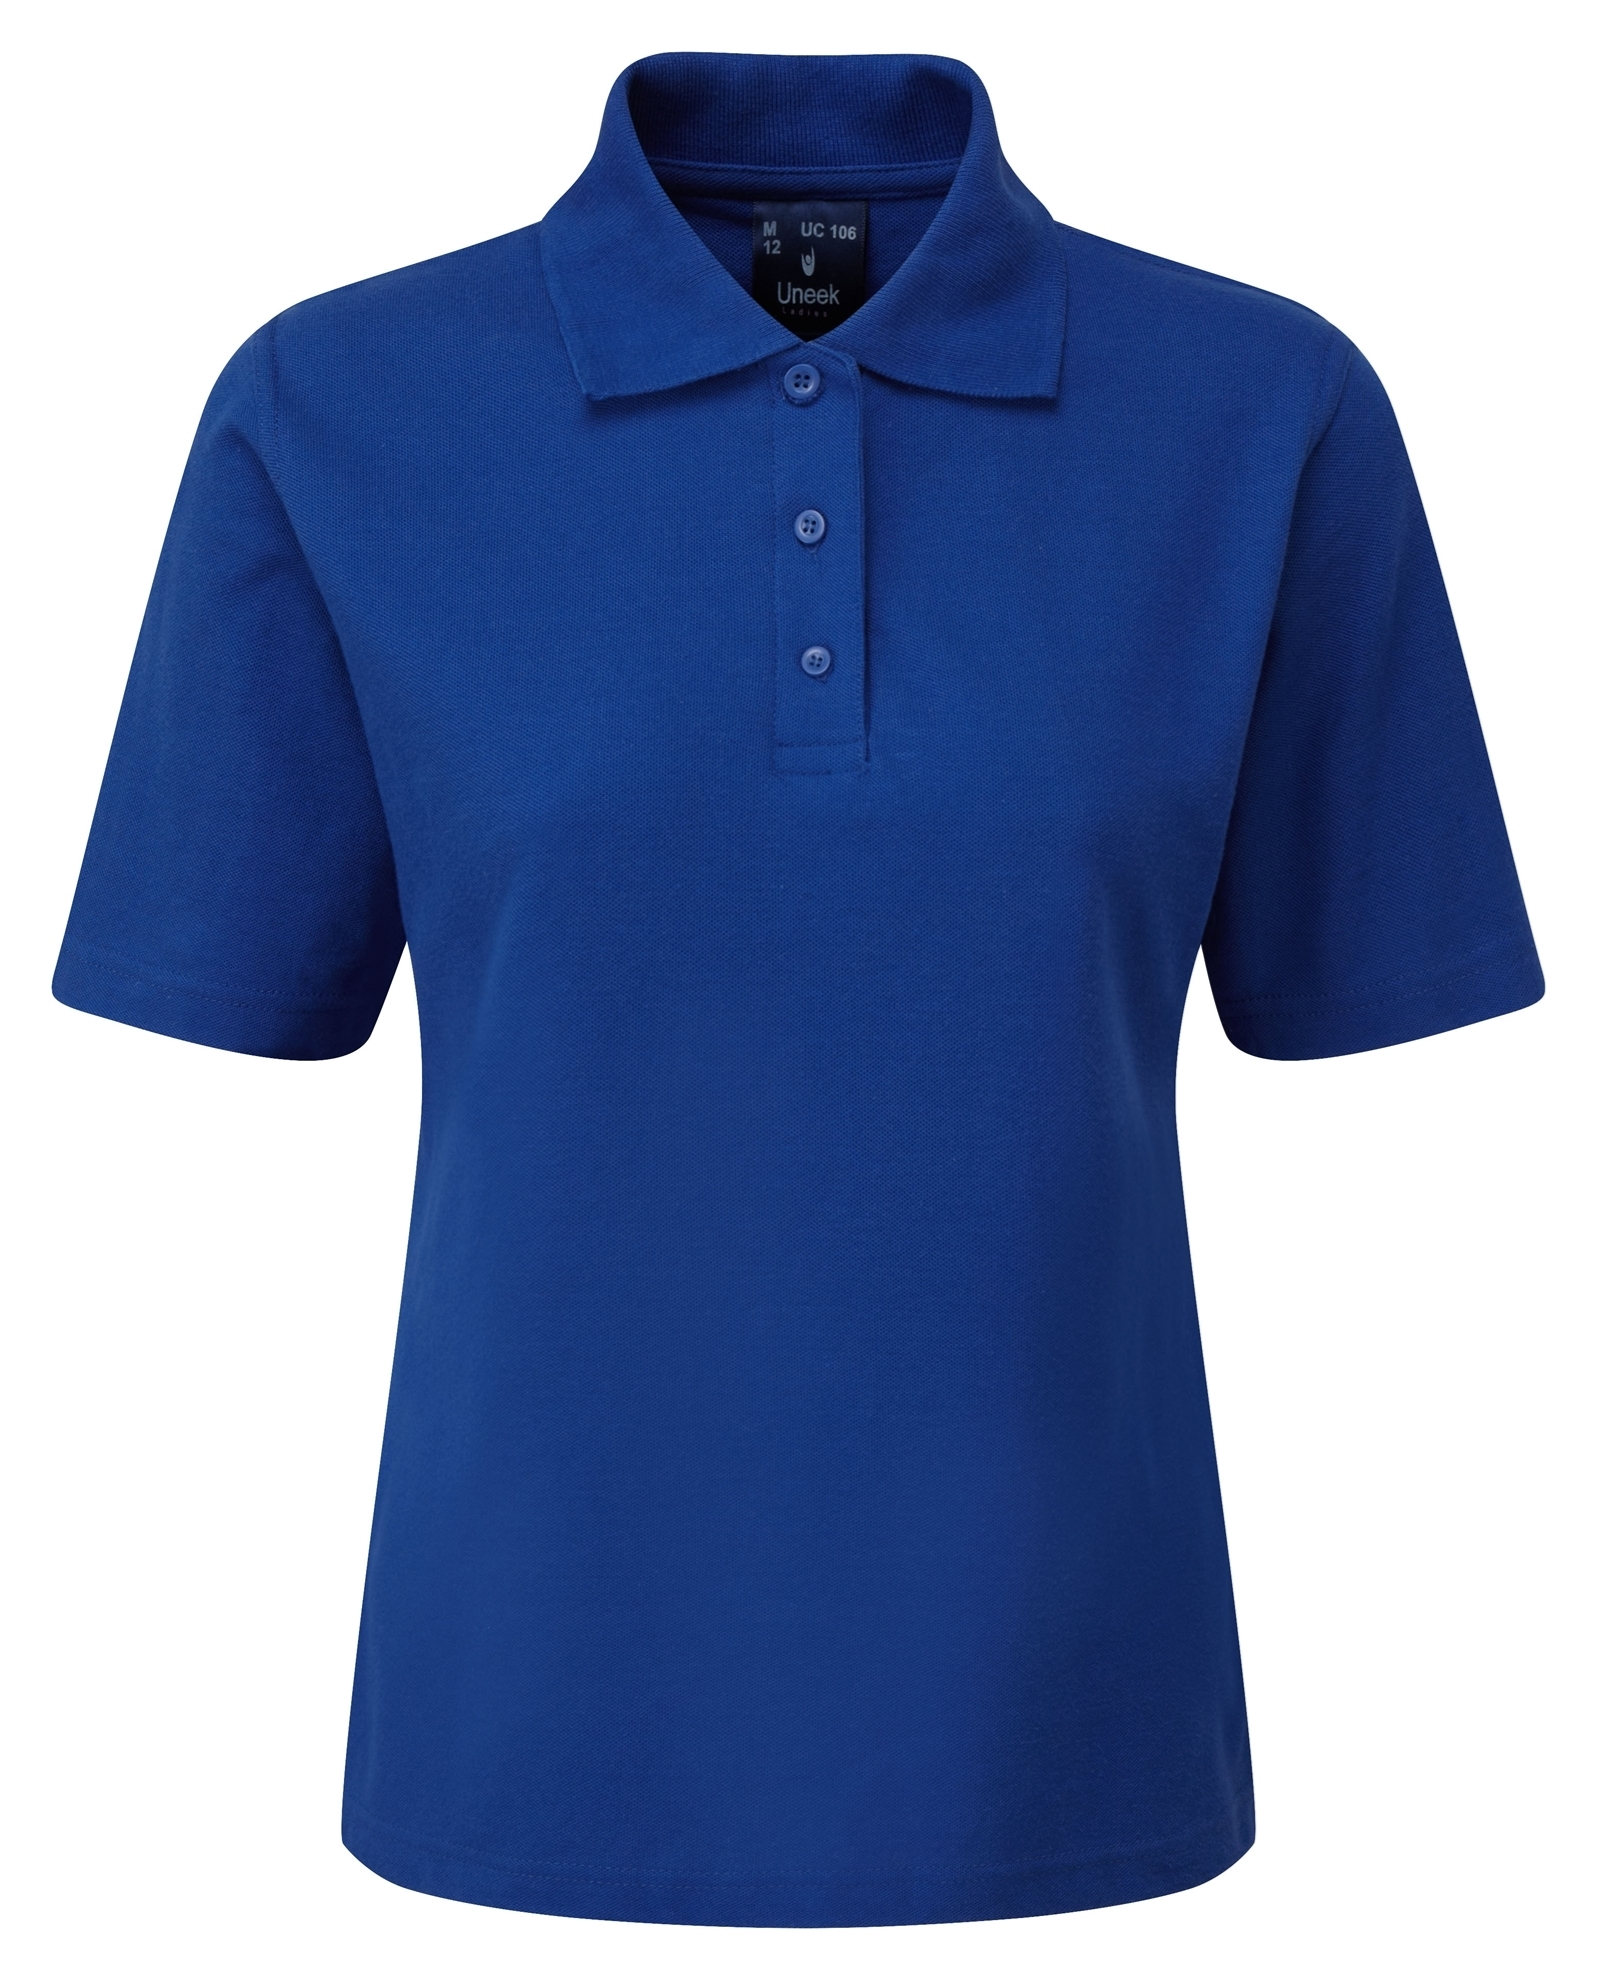 Picture of Female Polo Shirt - Royal Blue